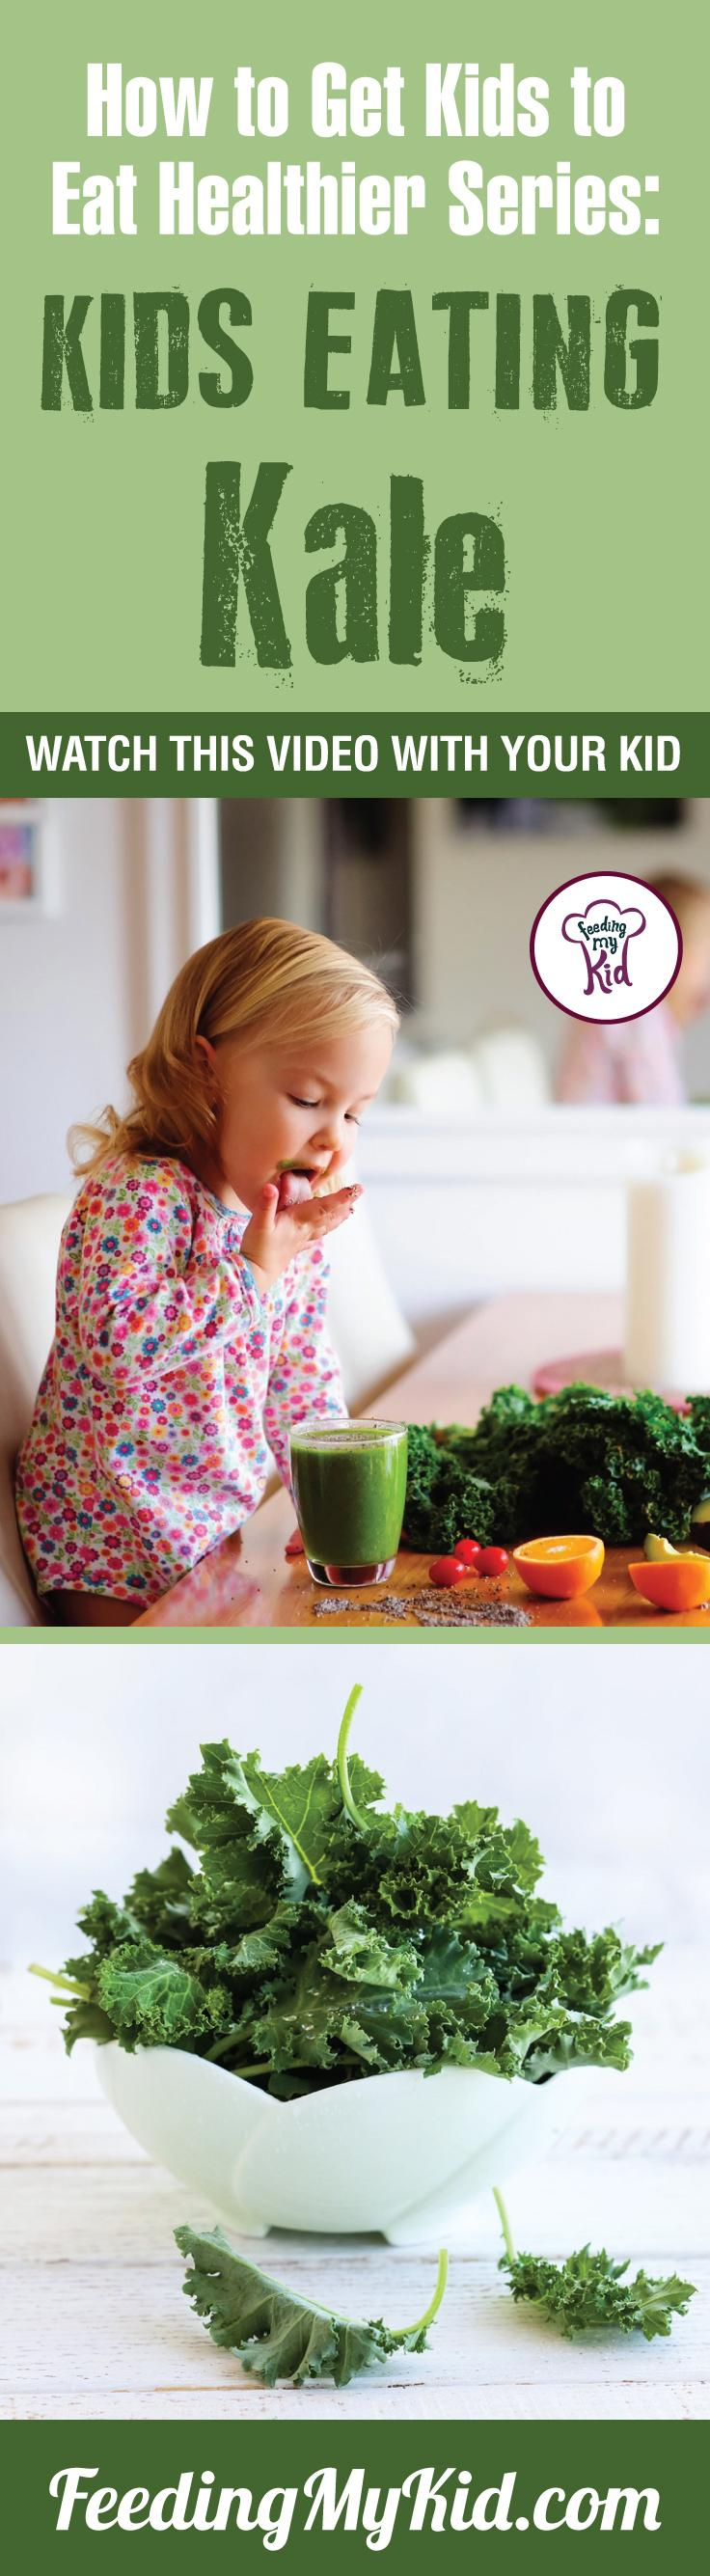 This is a must pin! Want your kids to eat kale? Teach your kids how to eat more vegetables and fruits. Watch these videos with your kids of kids eating veggies and fruits and get your kids to eat veggies and fruits. Find out how it works here. Feeding My Kid is a filled with all the information you need about how to raise your kids, from healthy tips to nutritious recipes. #pickyeating #getkidstoeat #kale